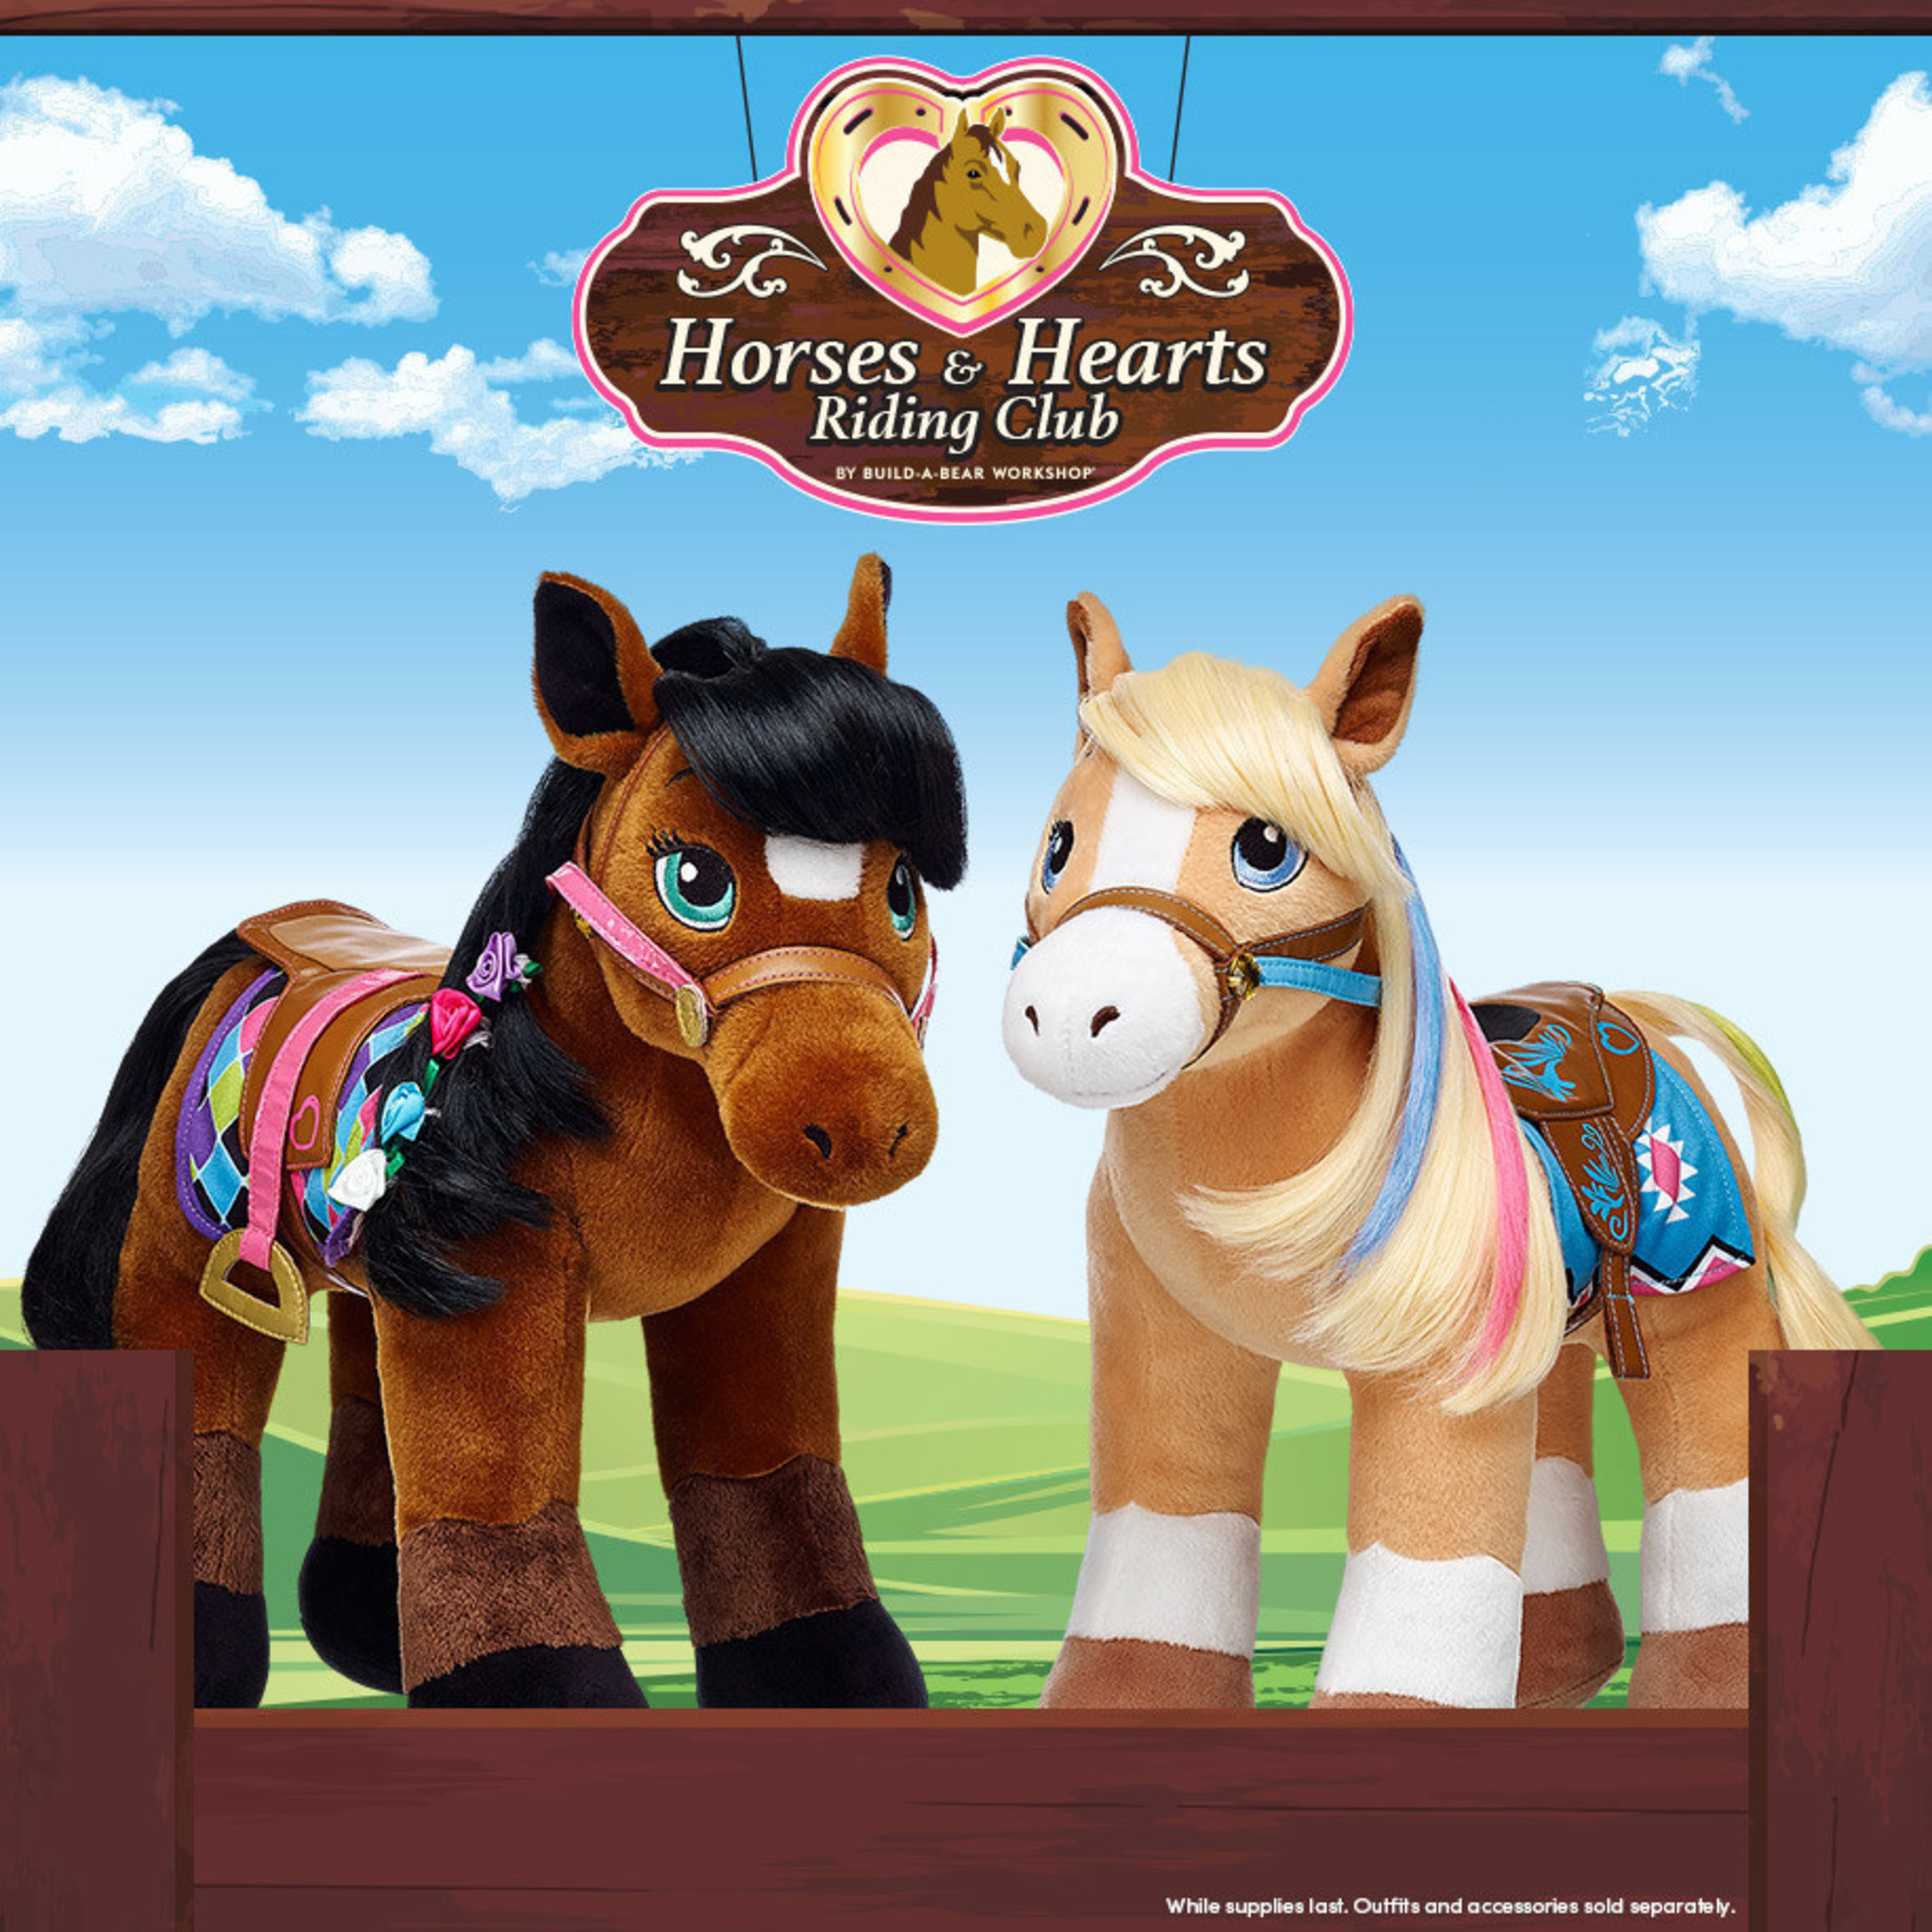 Build-A-Bear Workshop unveiled its new proprietary Horses & Hearts Riding Club collection today, making equestrian dreams come true for horse enthusiasts everywhere.